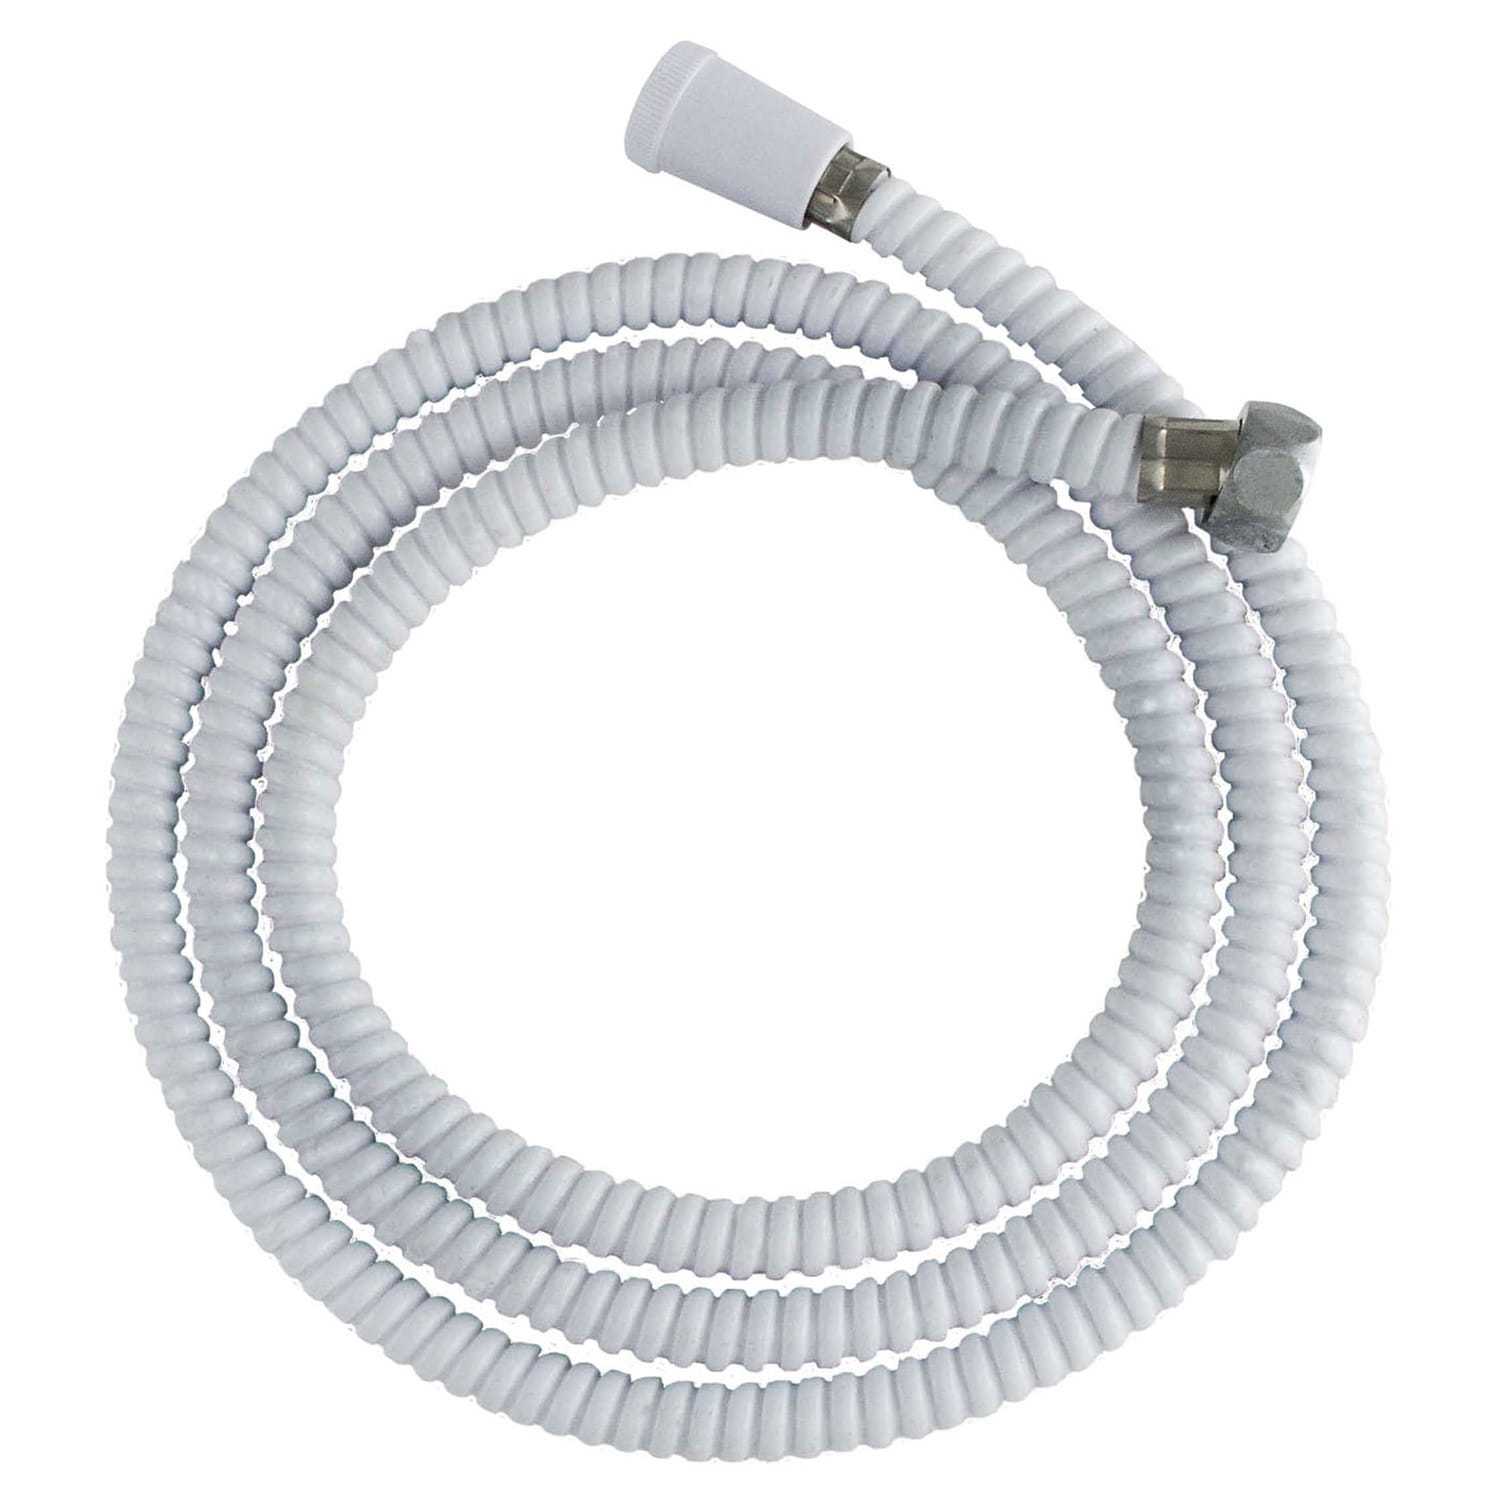 Hand held shower hose replacement | Compare Prices at Nextag